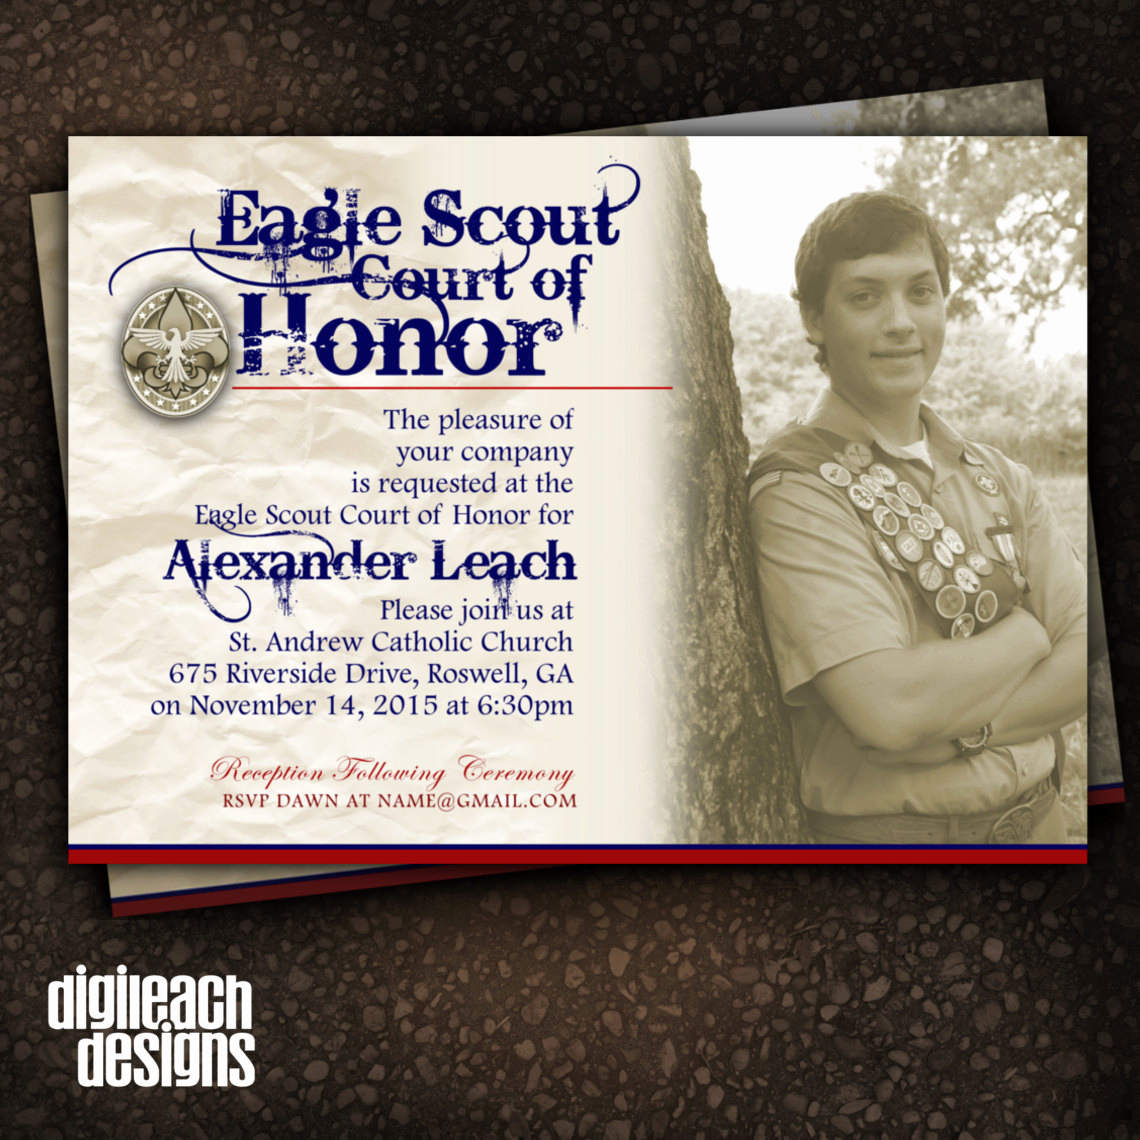 Eagle Scout Invitation Ideas Luxury Eagle Scout Court Of Honor Invitation Crinkle Sepia with